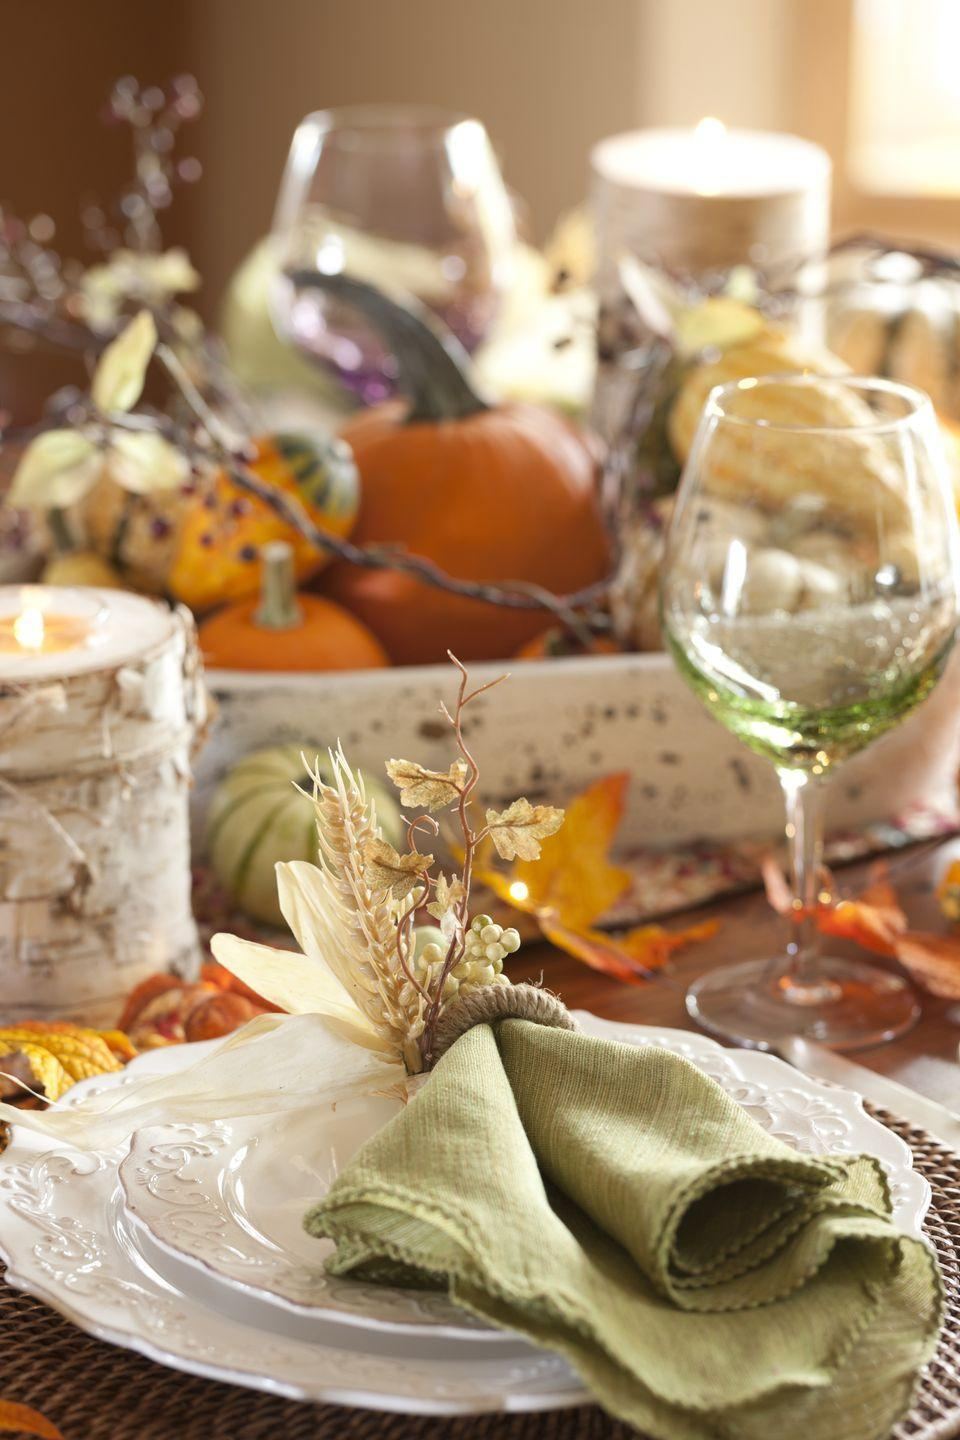 """<p>Whether you're going for a football theme, a haunted-house vibe, a backyard campfire, or friendsgiving, there's a <a href=""""https://www.oprahmag.com/life/g28159255/fall-party-ideas/"""" rel=""""nofollow noopener"""" target=""""_blank"""" data-ylk=""""slk:fall party idea"""" class=""""link rapid-noclick-resp"""">fall party idea</a> for everybody!</p>"""